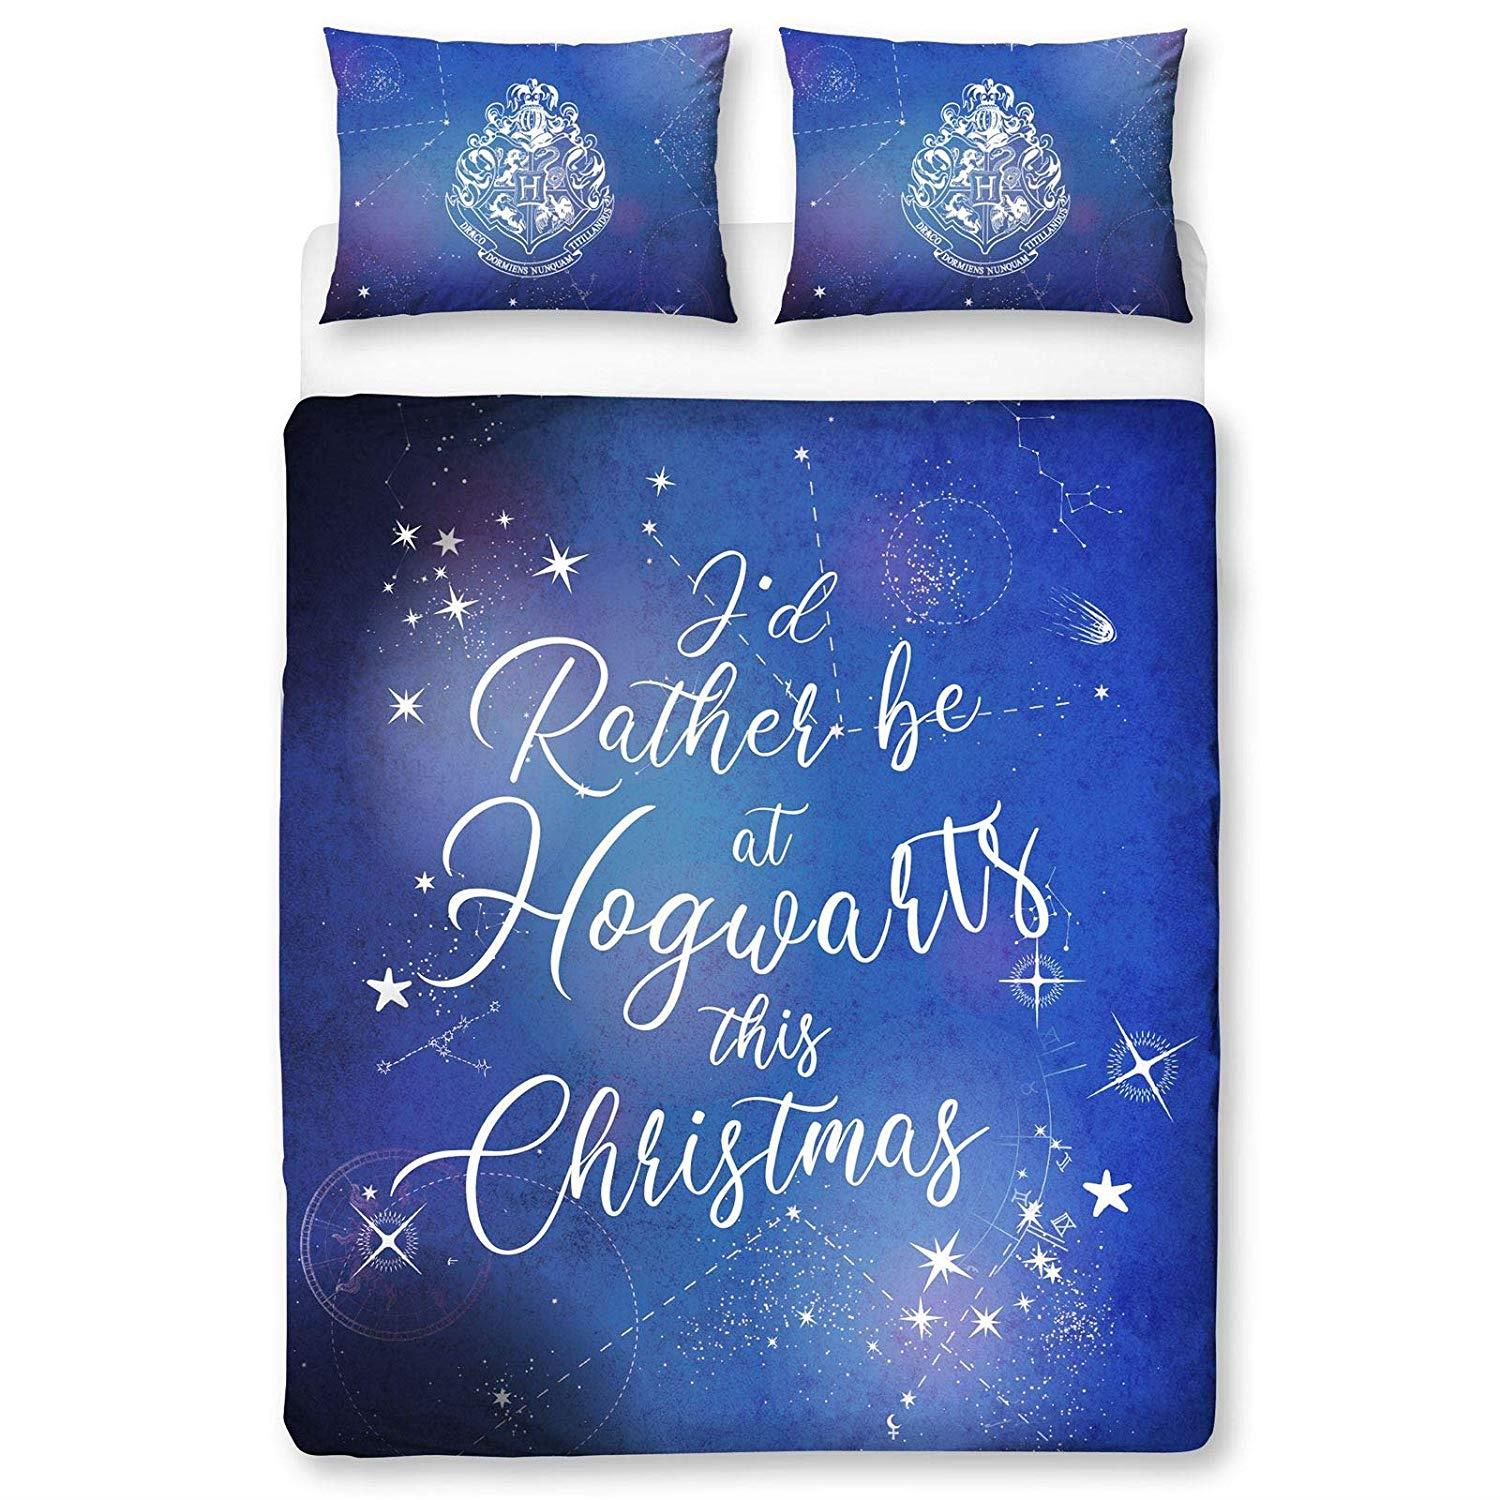 Official-Harry-Potter-Licensed-Duvet-Covers-Single-Double-Muggles-Hogwarts-Charm thumbnail 18